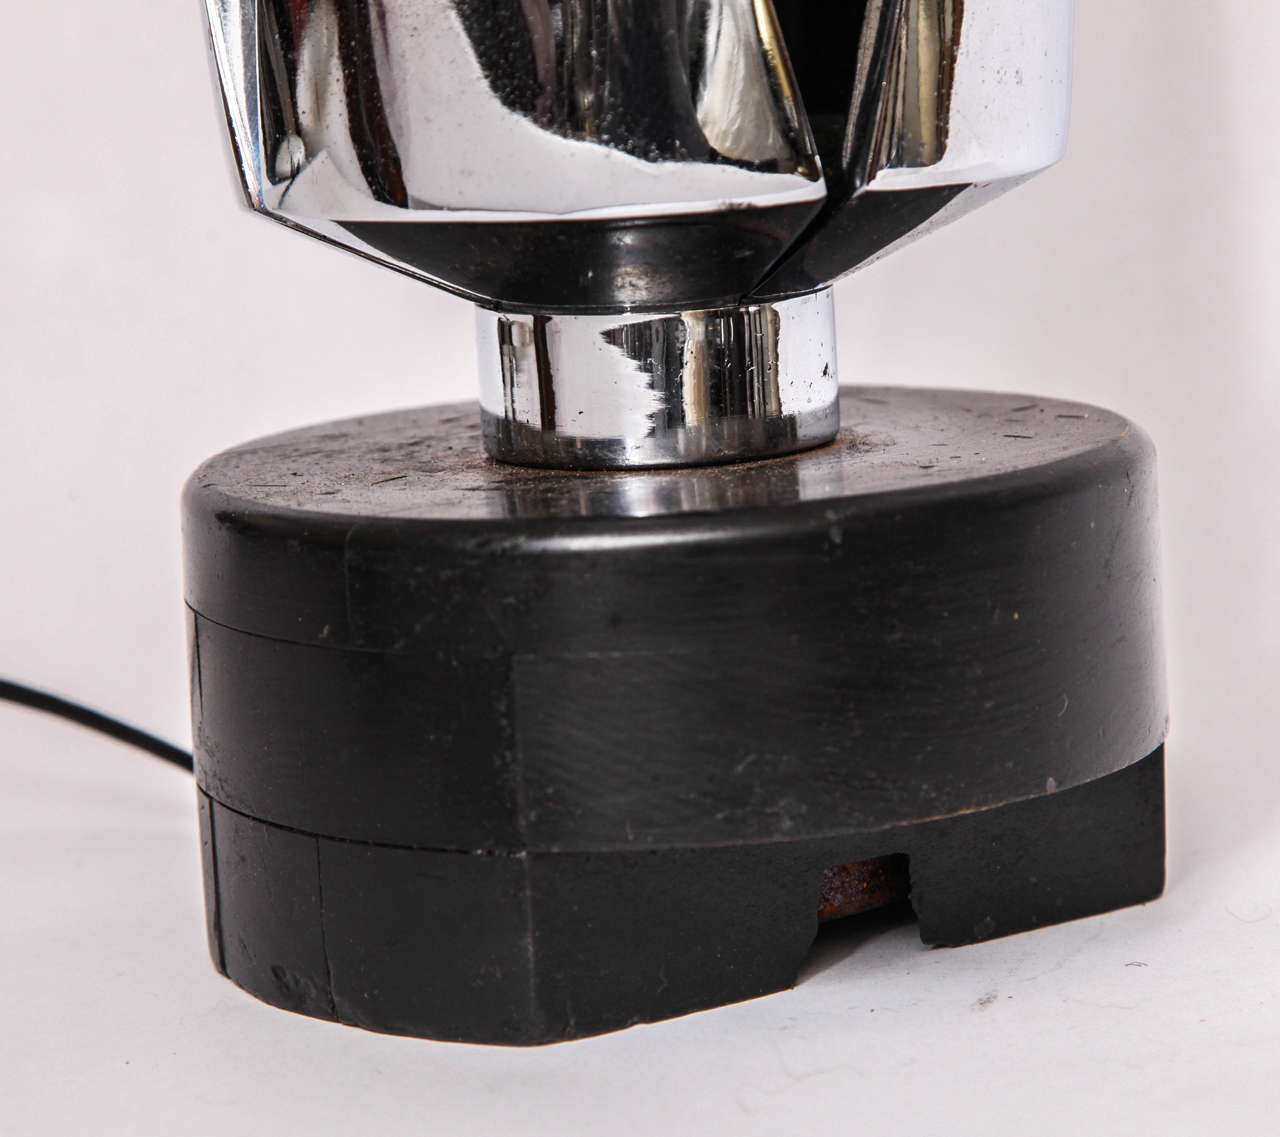 Polished Table Lamp Mid Century Modern Futuristic 1970's For Sale